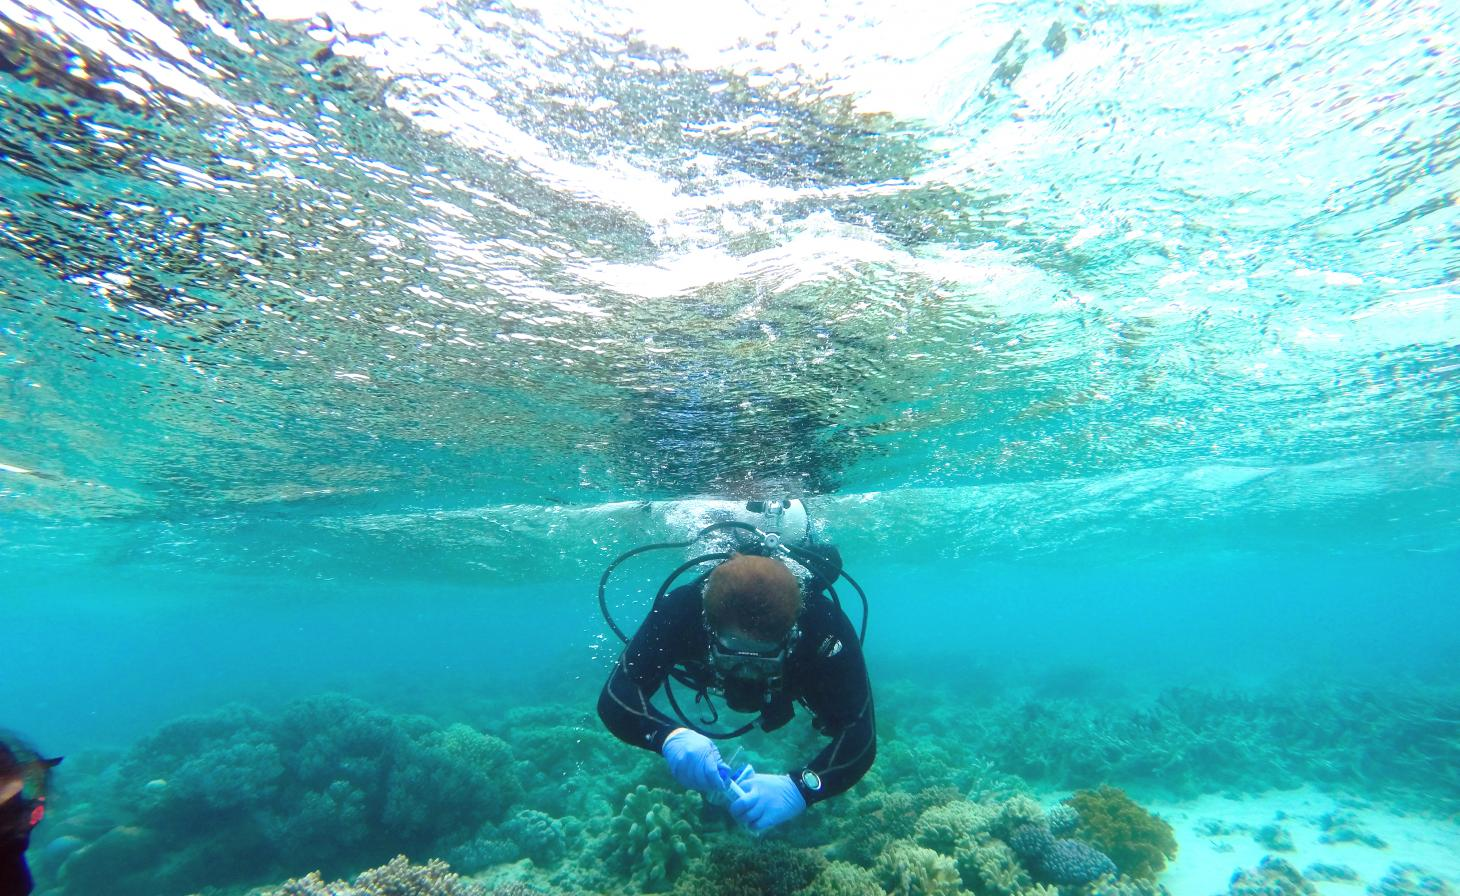 Microbiology student scuba diving for samples